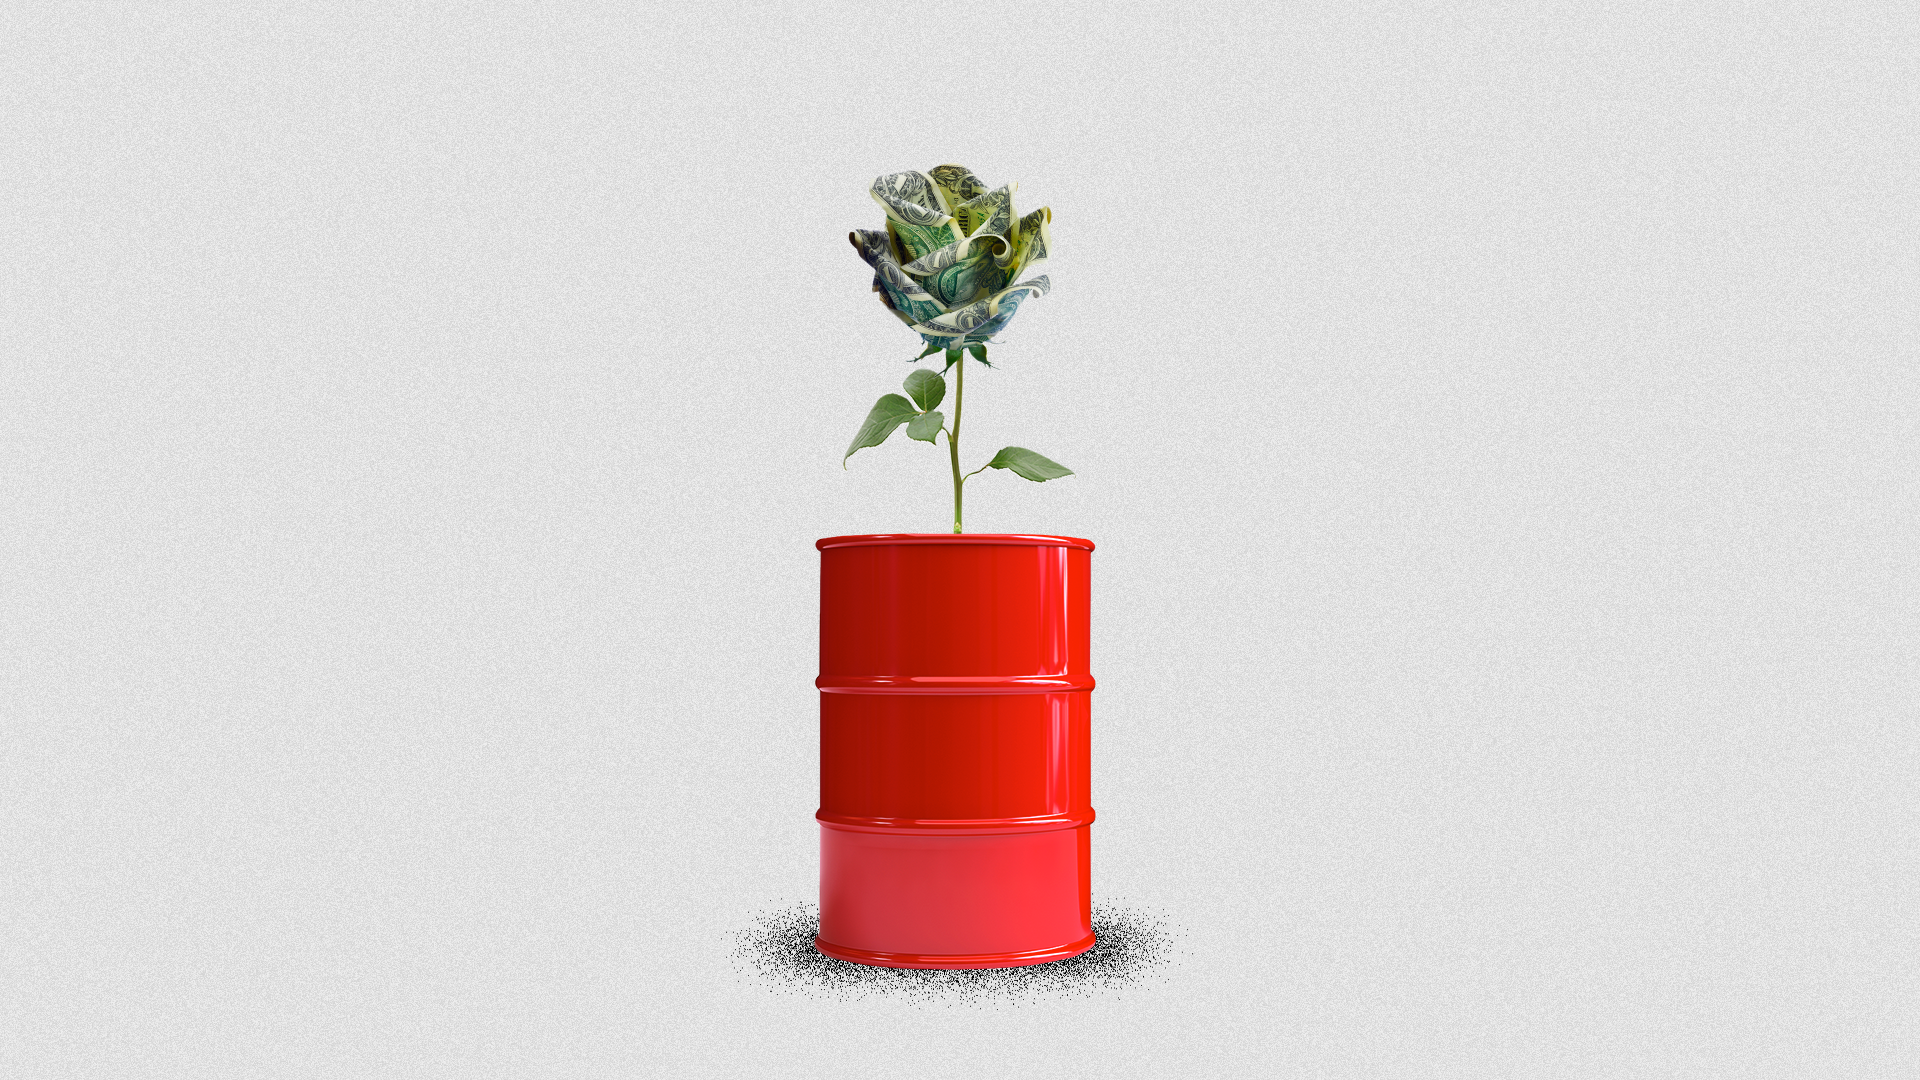 Illustration of an oil barrel with a flower made of cash growing out of it.